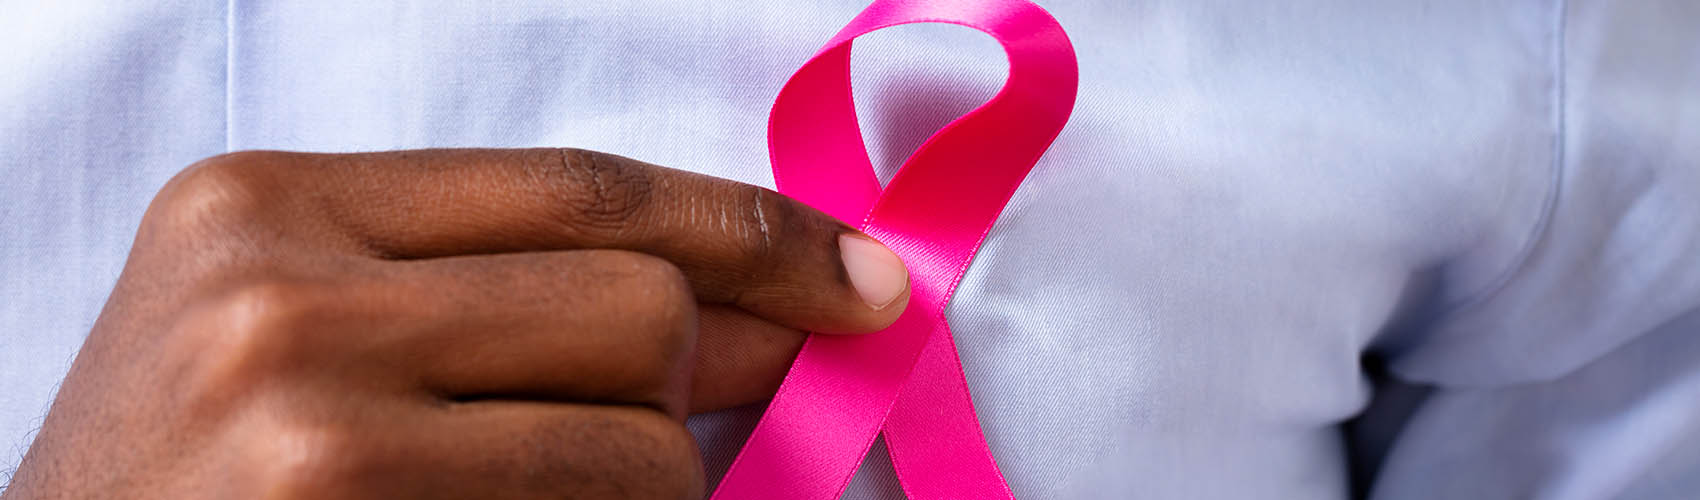 Did You Know Men Can Also Get Breast Cancer?